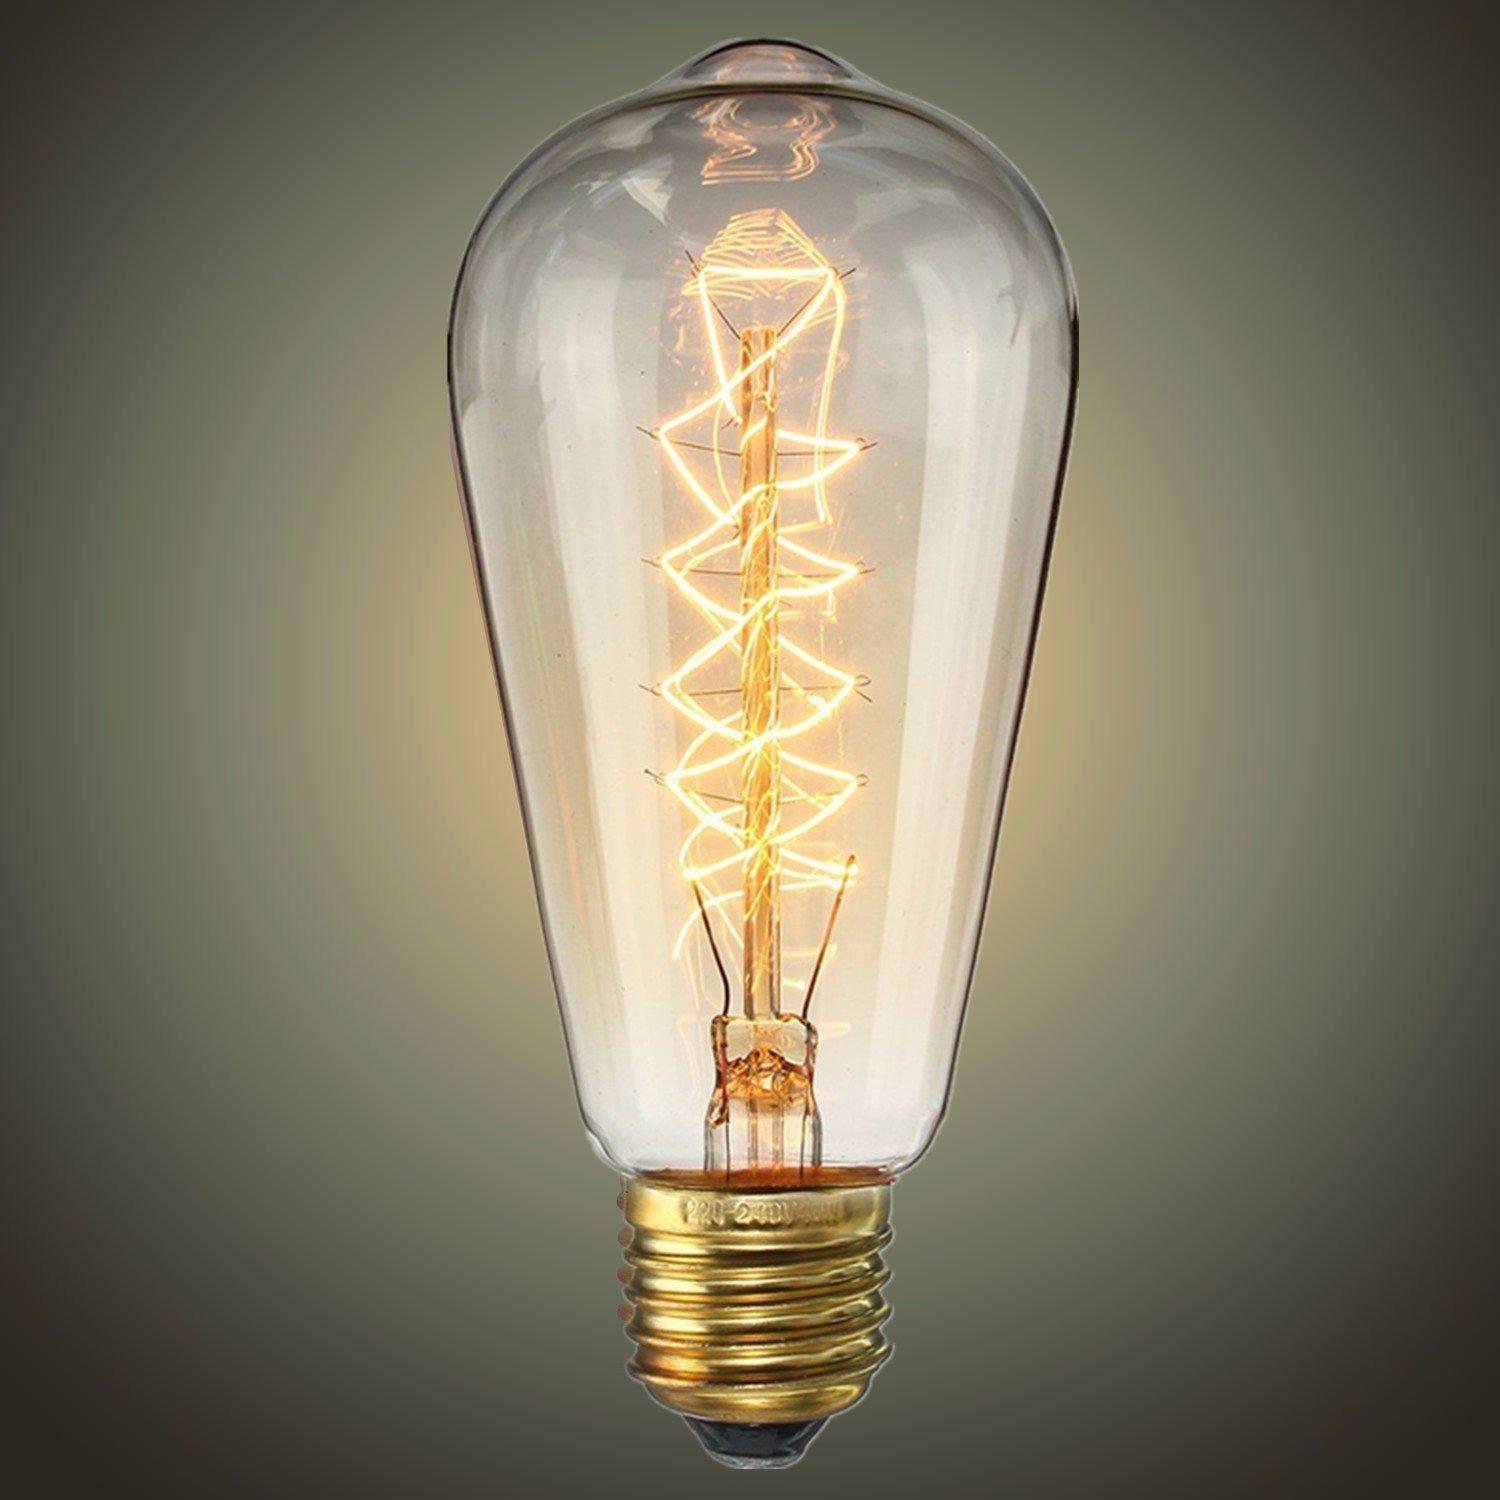 ACA Lighting EDISON retro žárovka ST64 40W E27